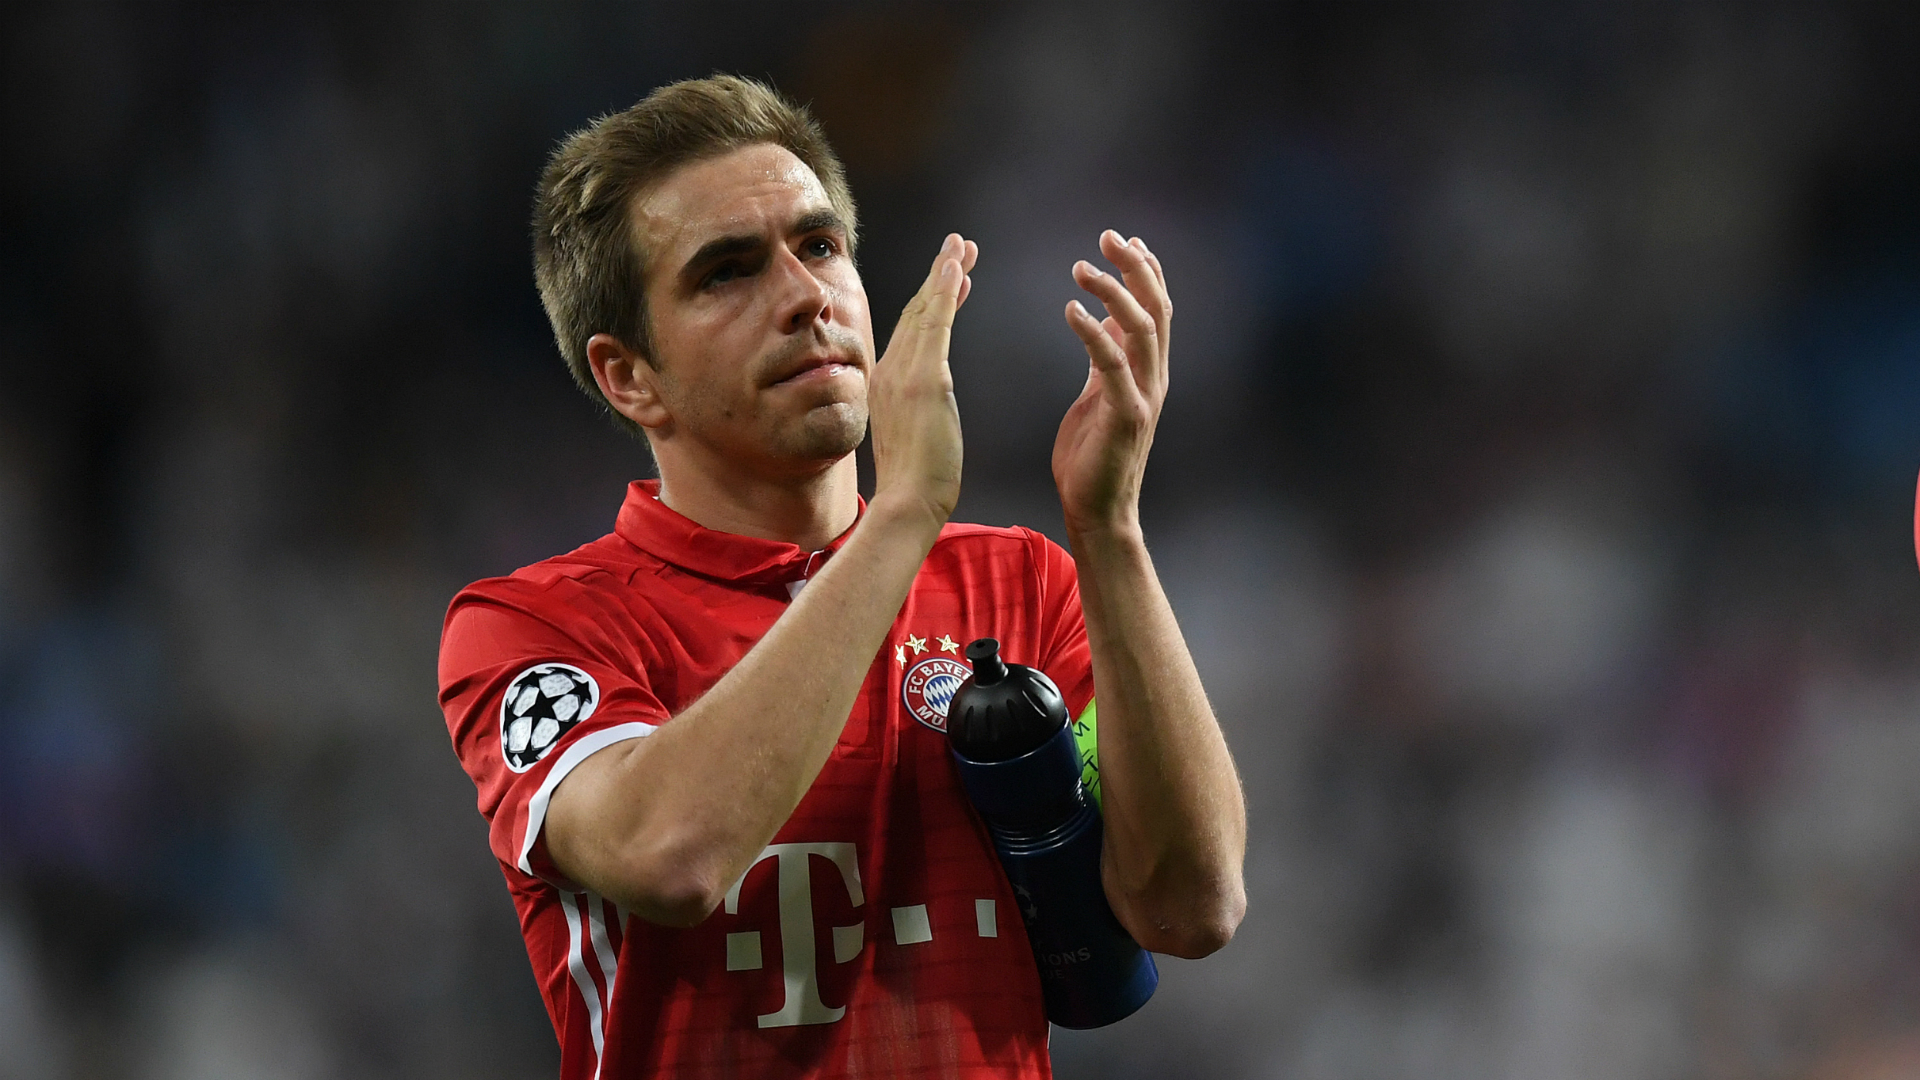 It would be a wonderful end- Lahm determined to reach cup final at Dortmund's expense